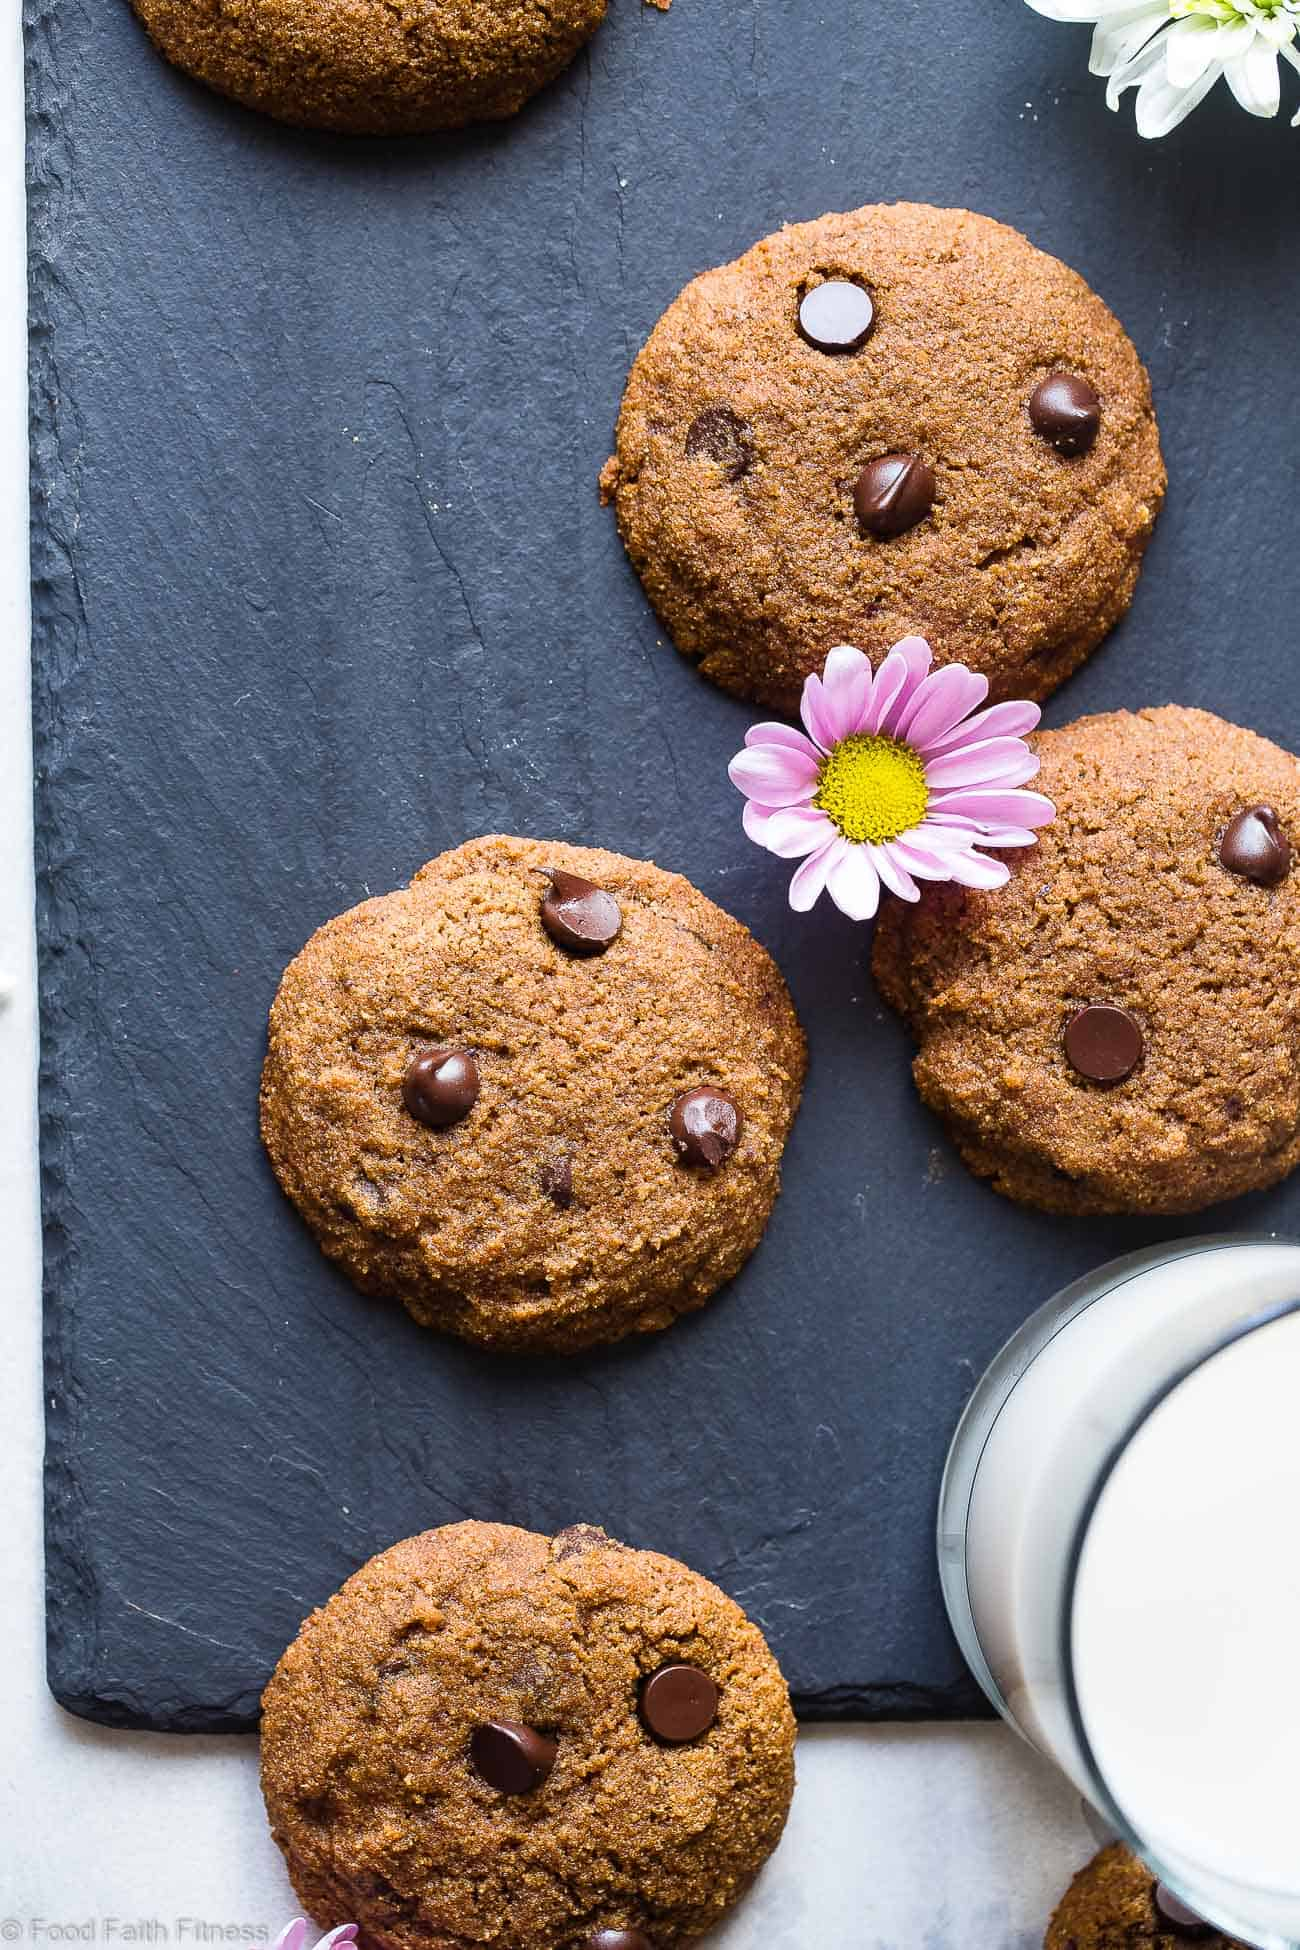 Paleo Chocolate Chip Cookies -These EASYpaleo friendly coconut flour cookies recipe is are buttery, soft, chewy and SO rich and chocolaty! You won't believe they are gluten, grain and refined sugar free! | Foodfaithfitness.com | @FoodFaithFit